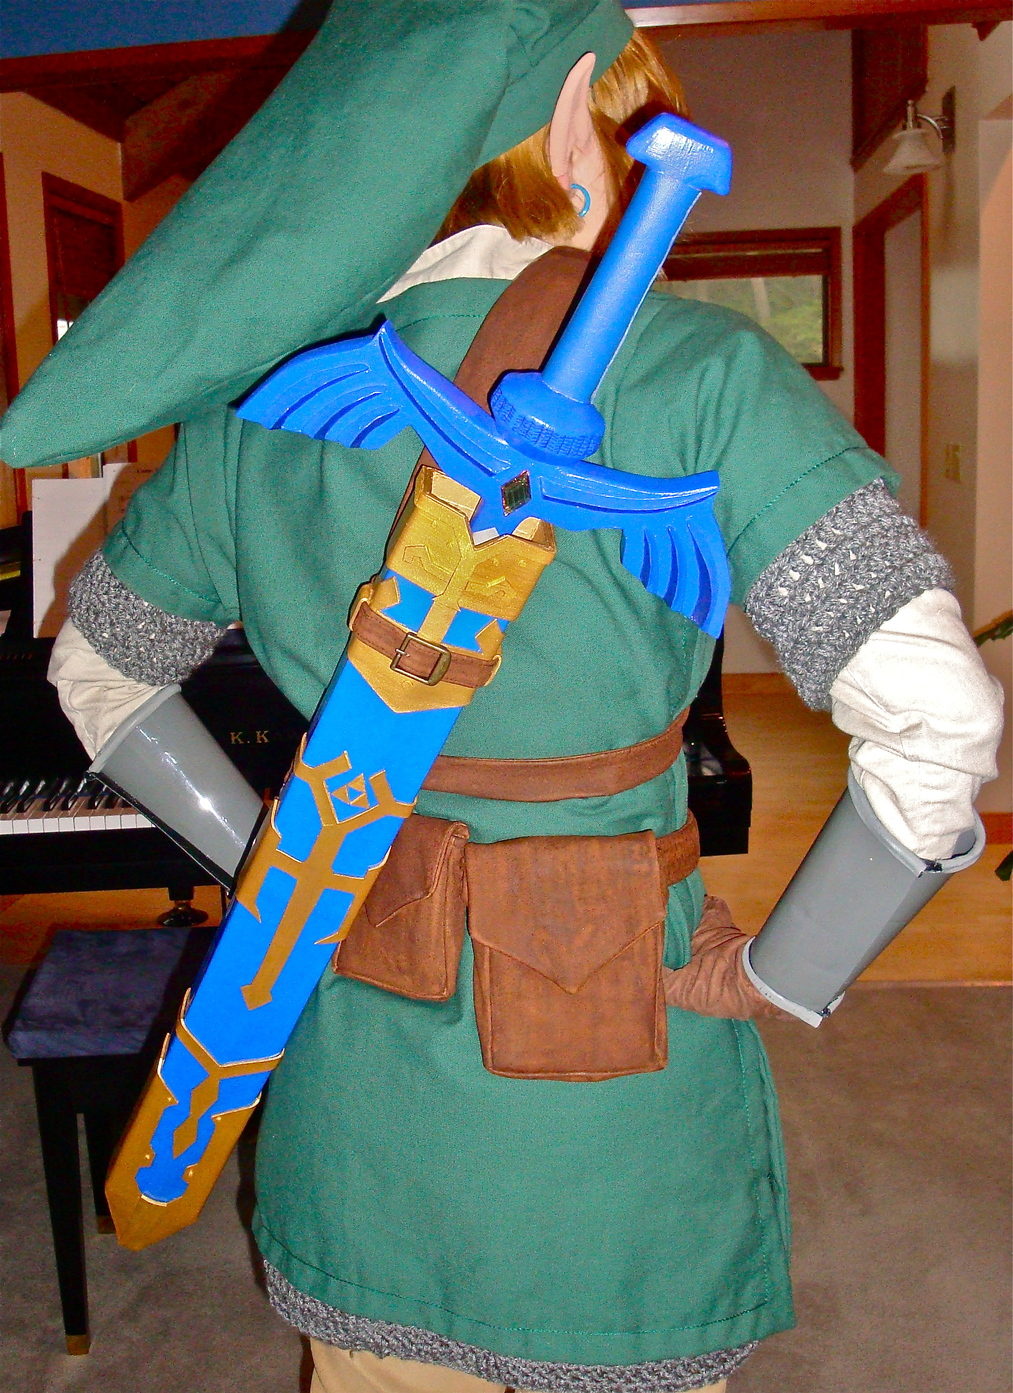 Link cosplay skyward sword completed costume i realized i never really posted any picture of the finished costume baditri Images